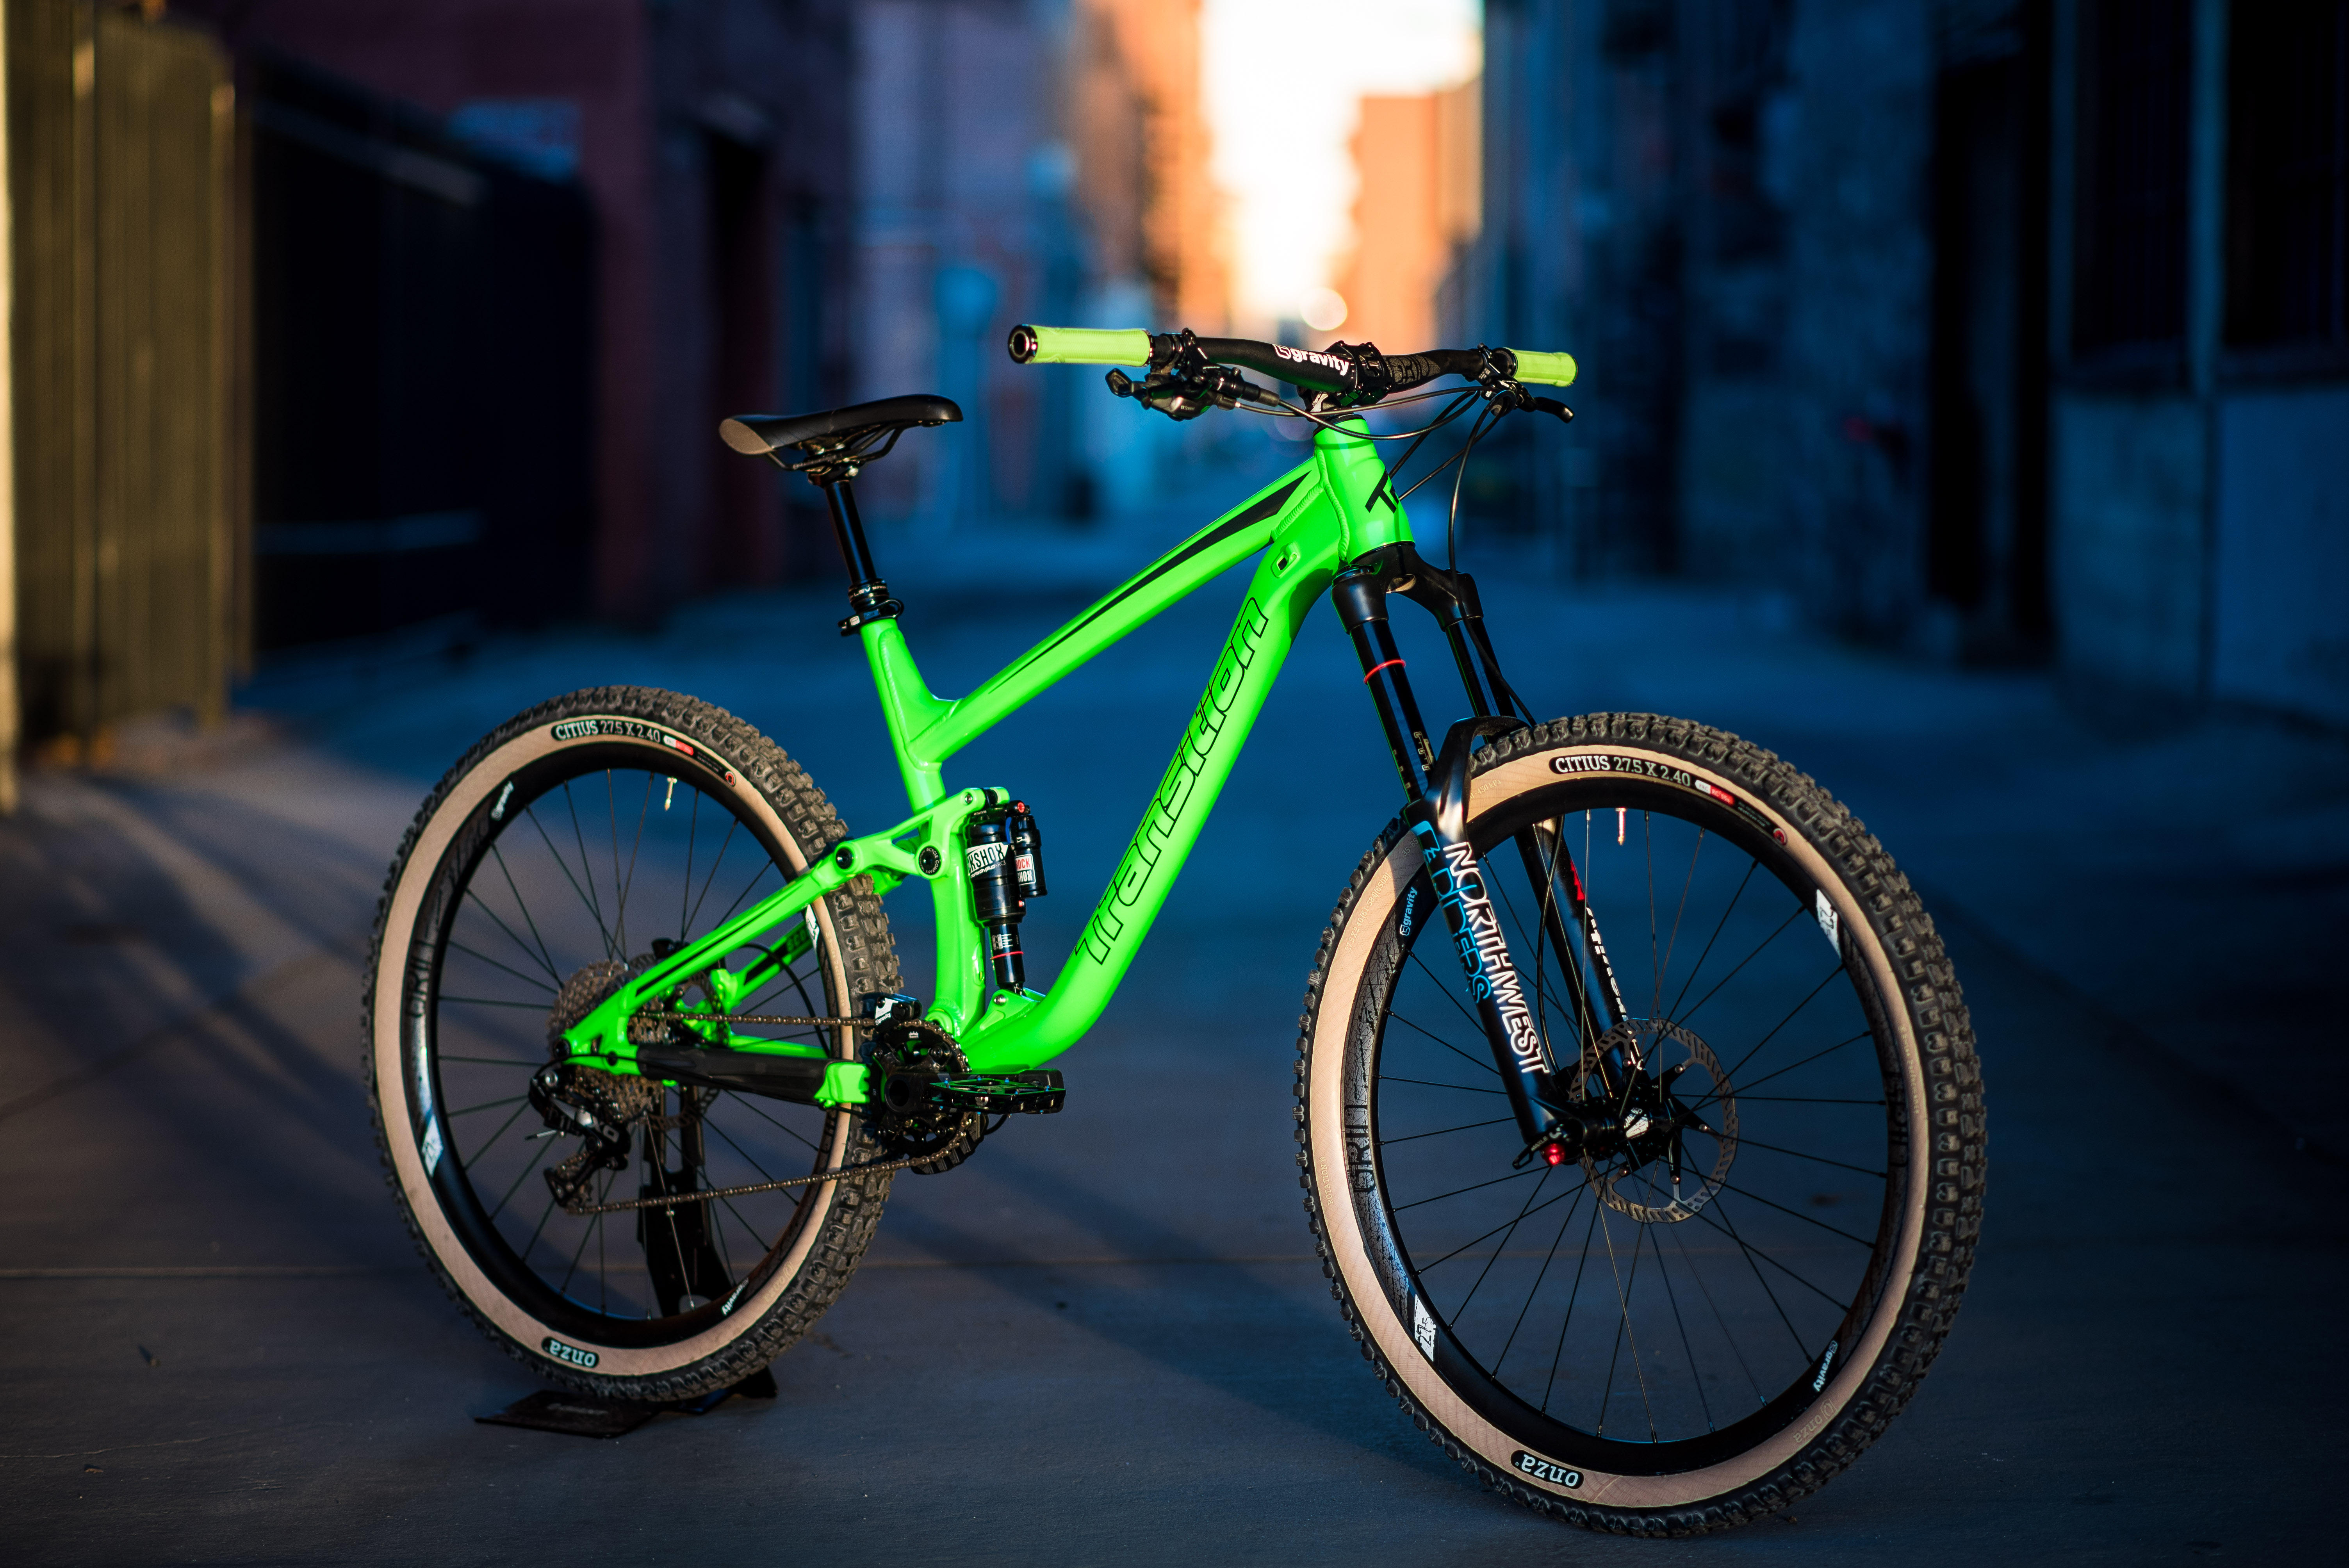 Bike Review: The faultless Look 675 for racing or